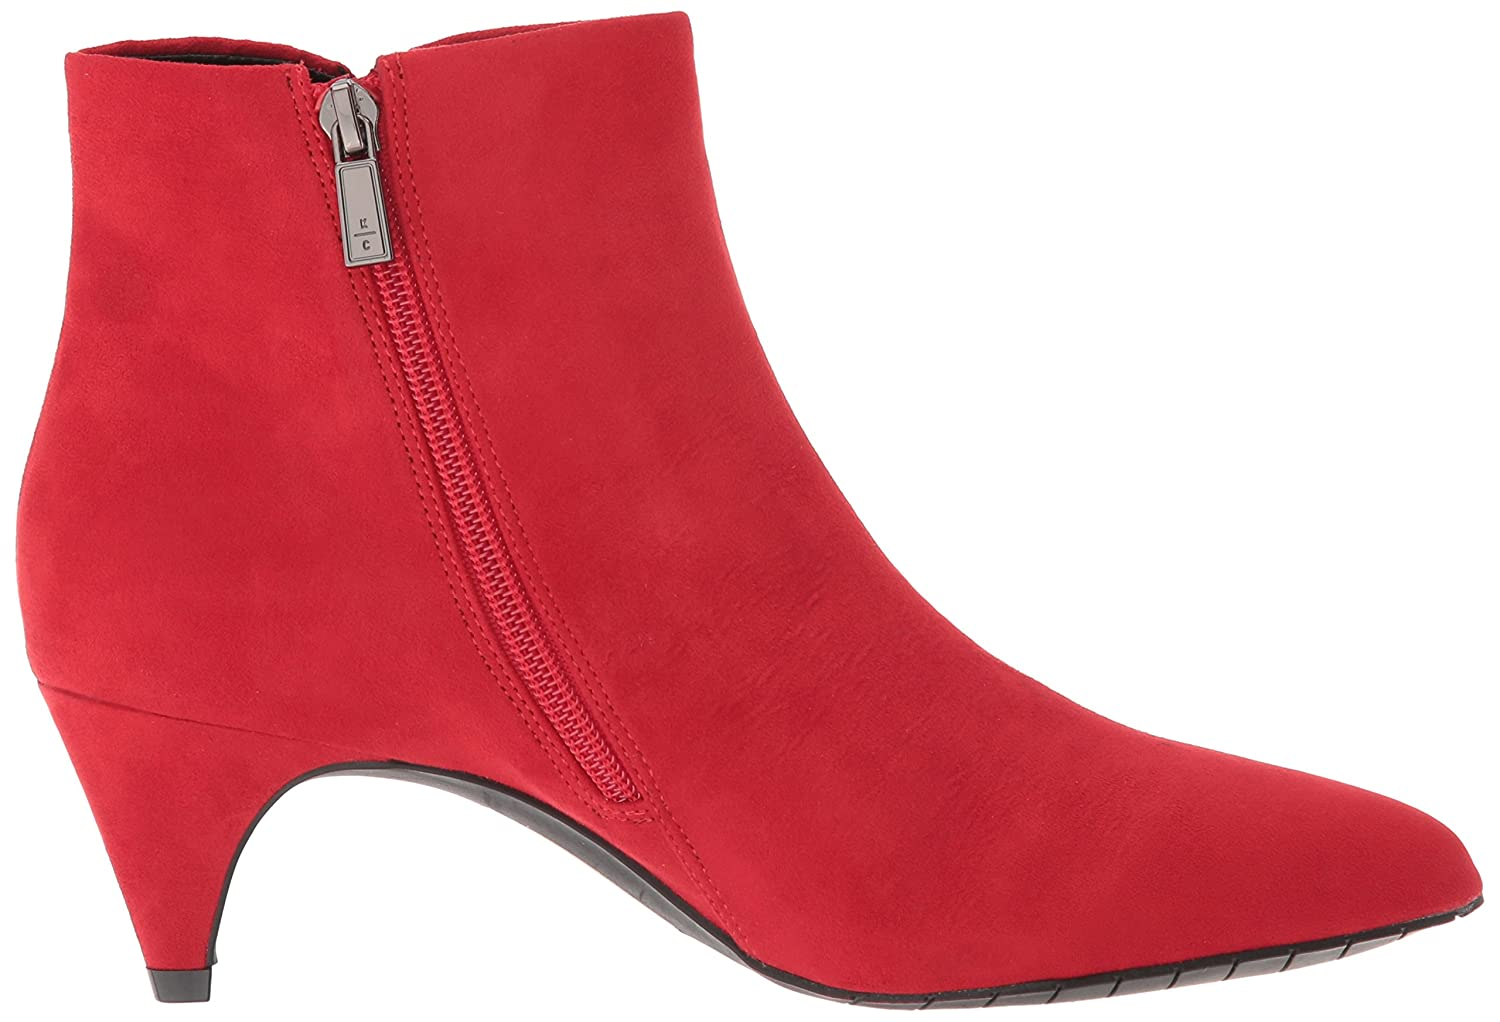 Kenneth Cole REACTION Women's Kick Bit Kitten Heel Bootie Ankle Boot B079G2SNDX 7 B(M) US|Red